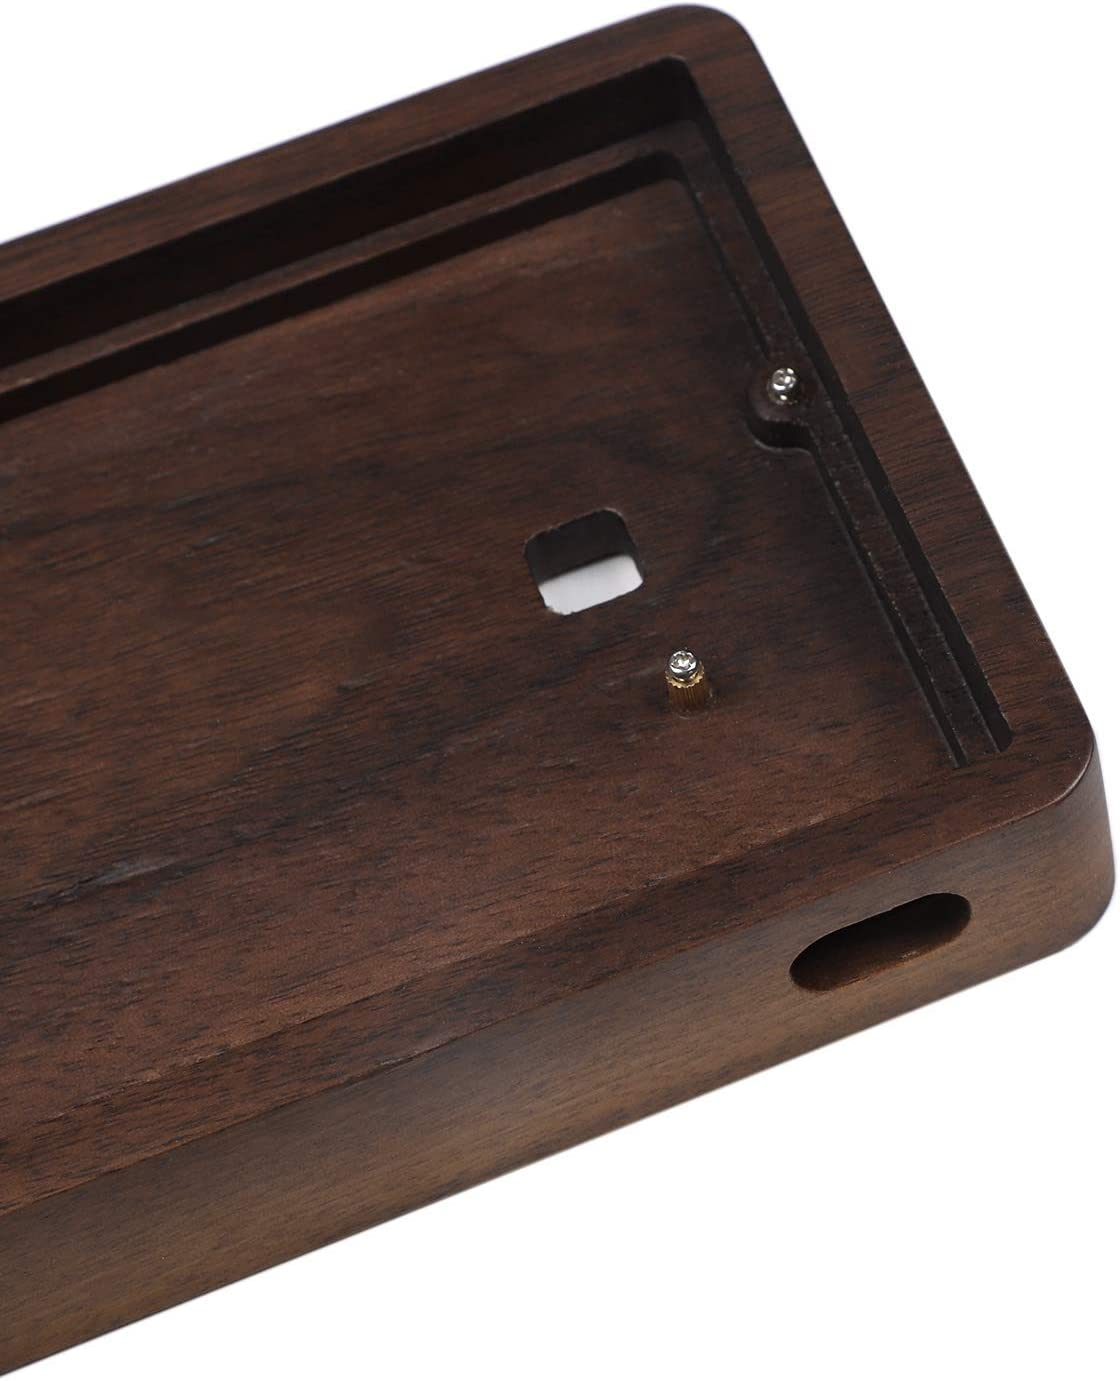 GK64 GK64XS Keyboard kit CNC Wood Wooden Case Bluetooth Wired PCB Plate Stabilizers Walnut Bluetooth PCB